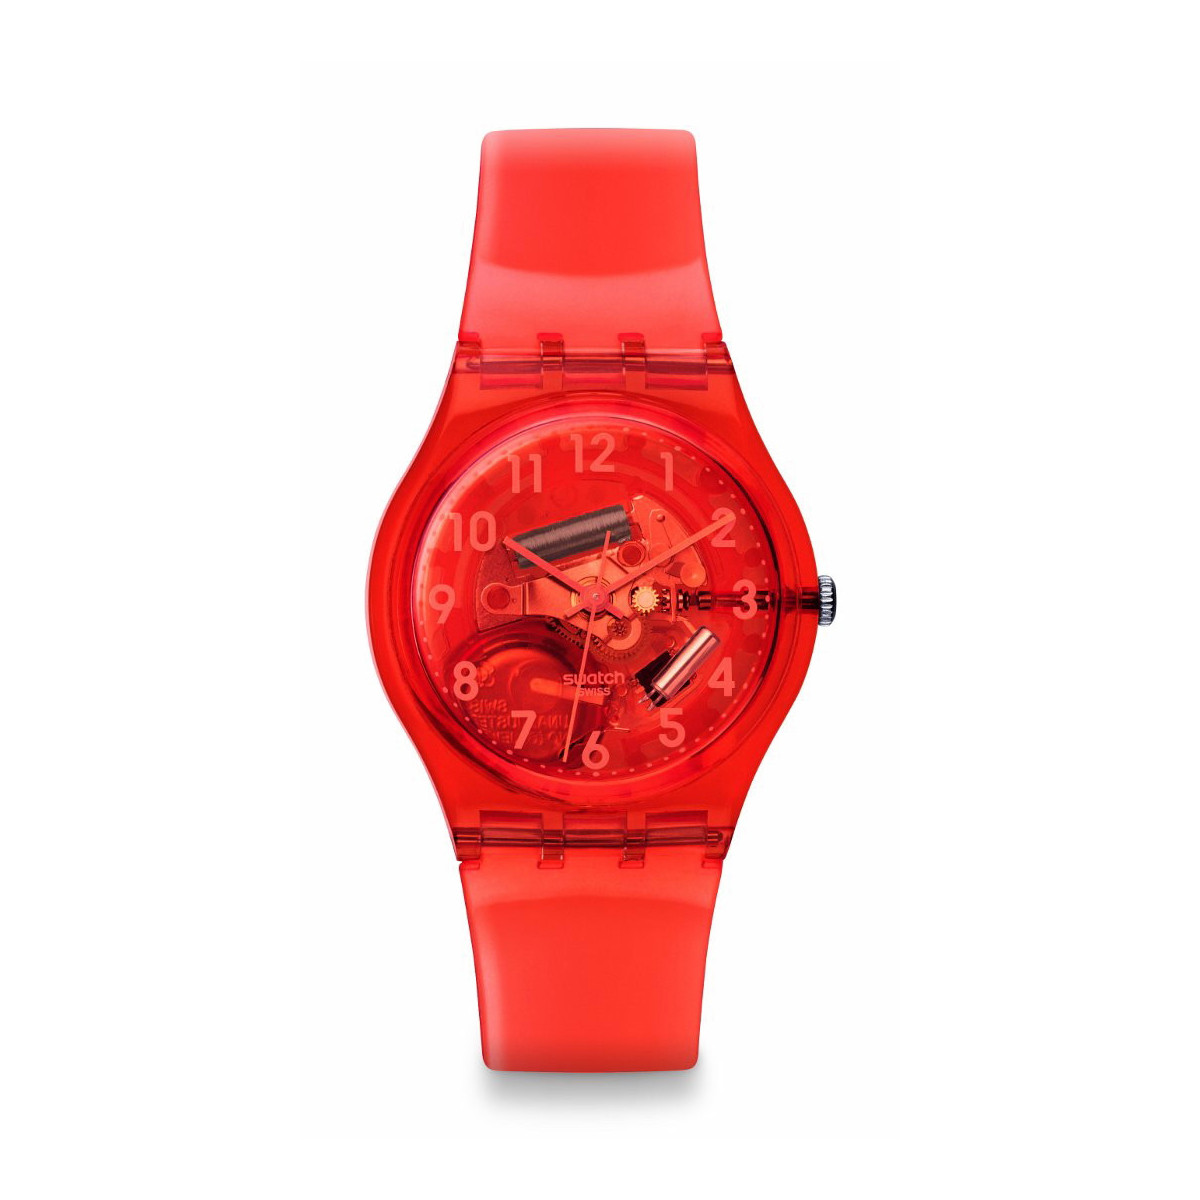 Swatch_SOO100_Orangish_Lacquered_outlet_50%